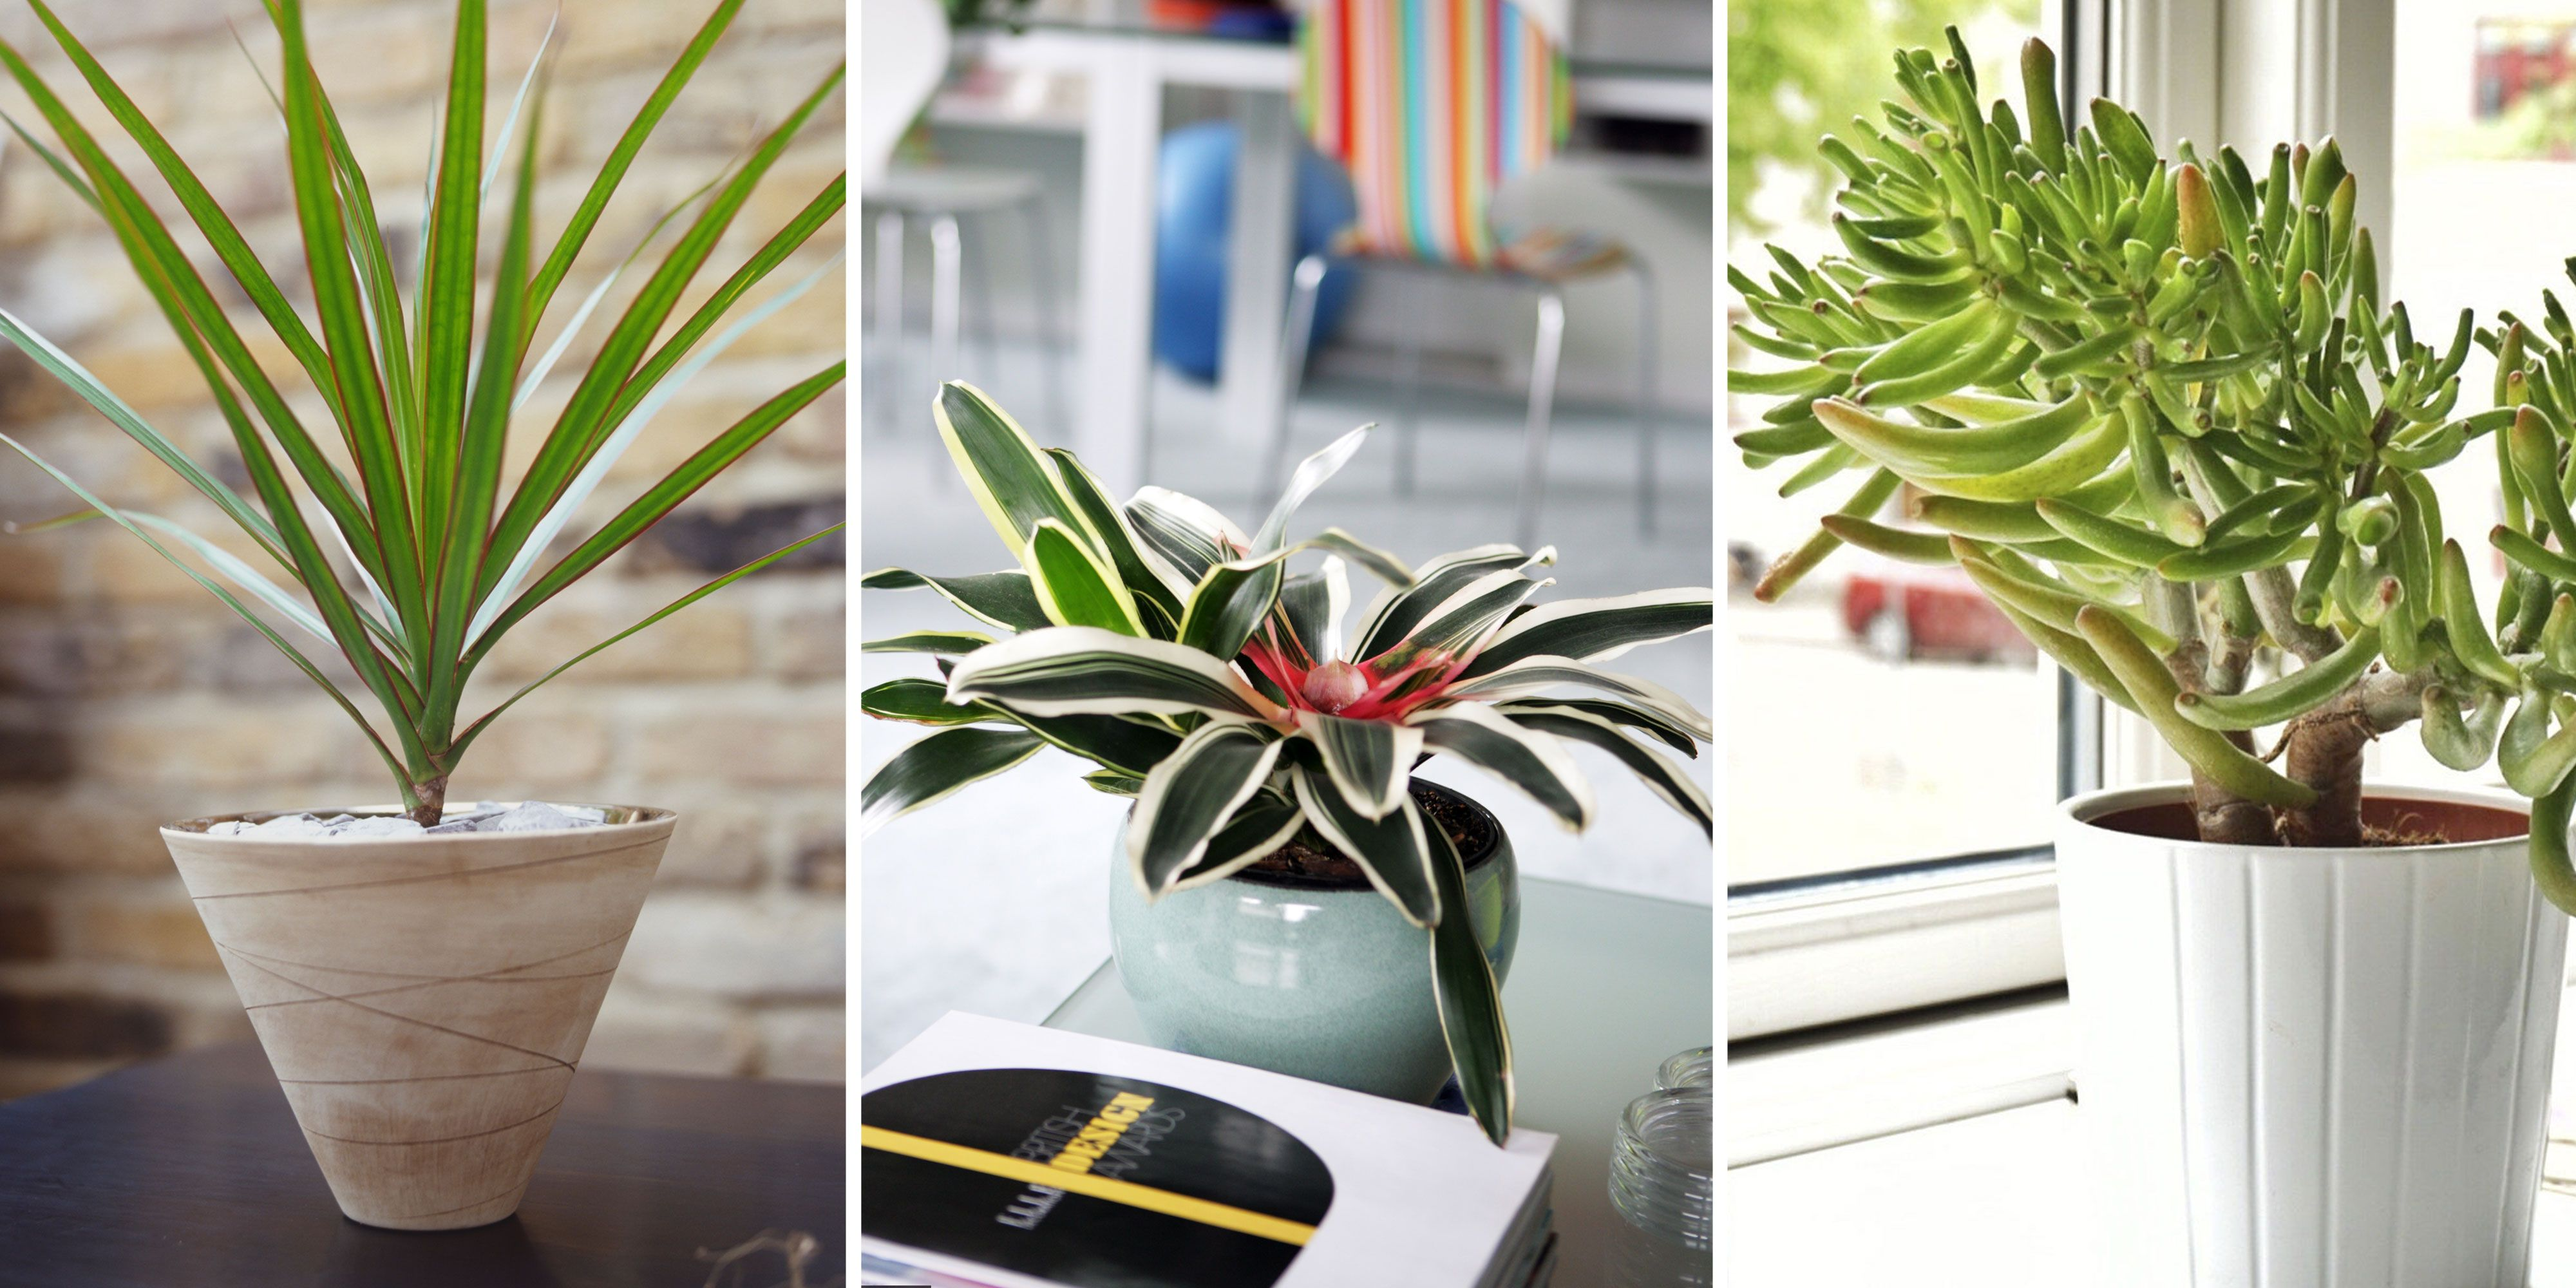 5 Plants That Can Help Improve Air Quality in Your Home